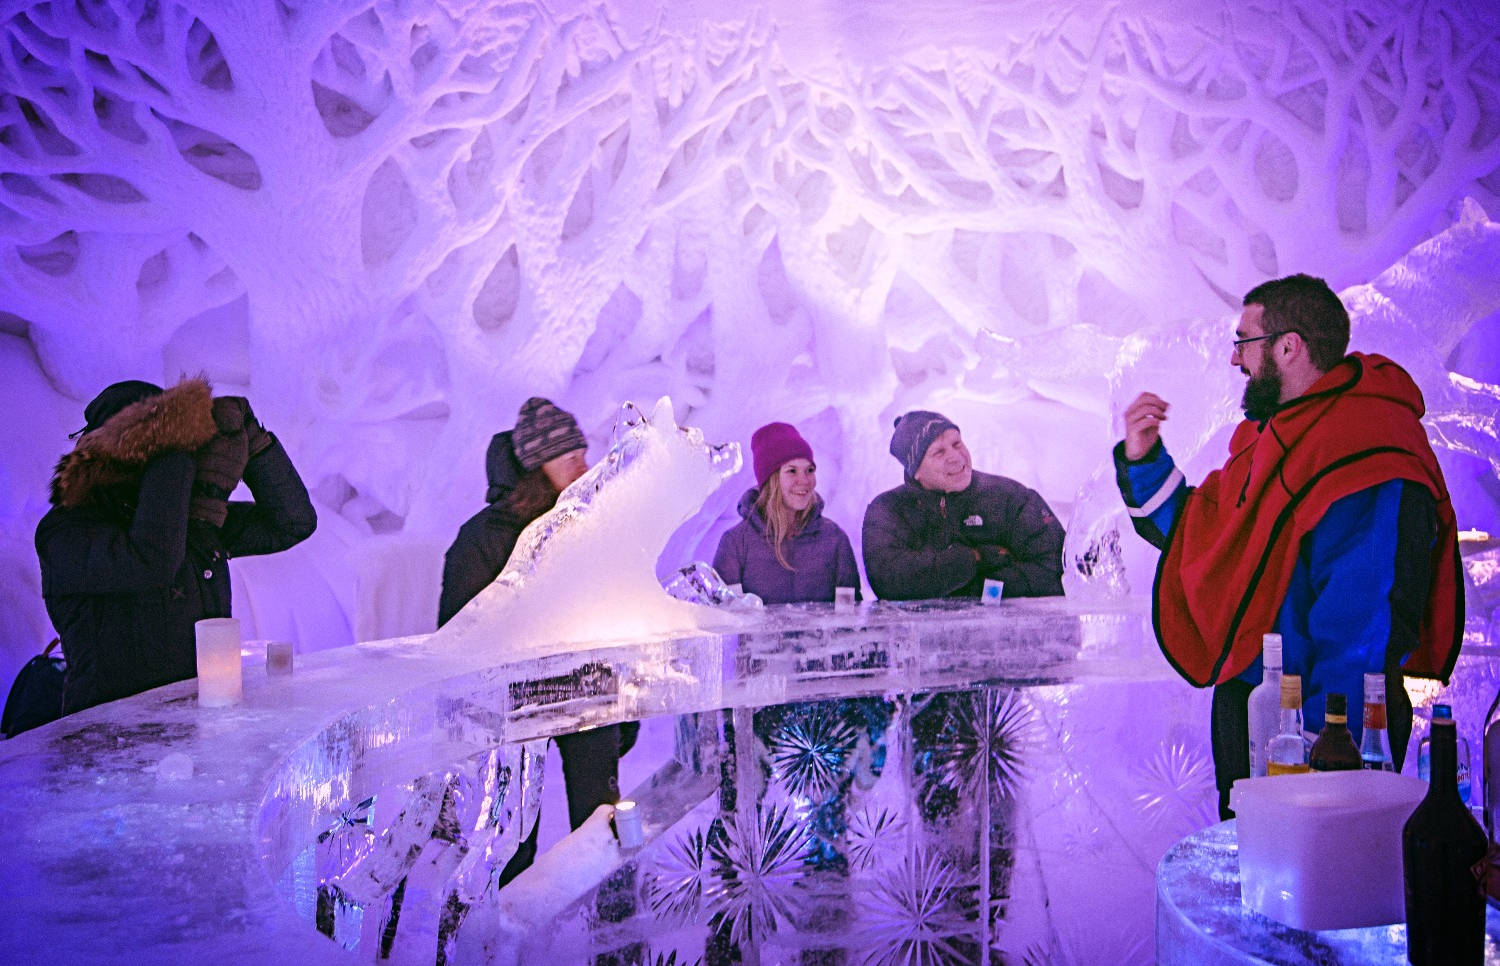 Icebar is open